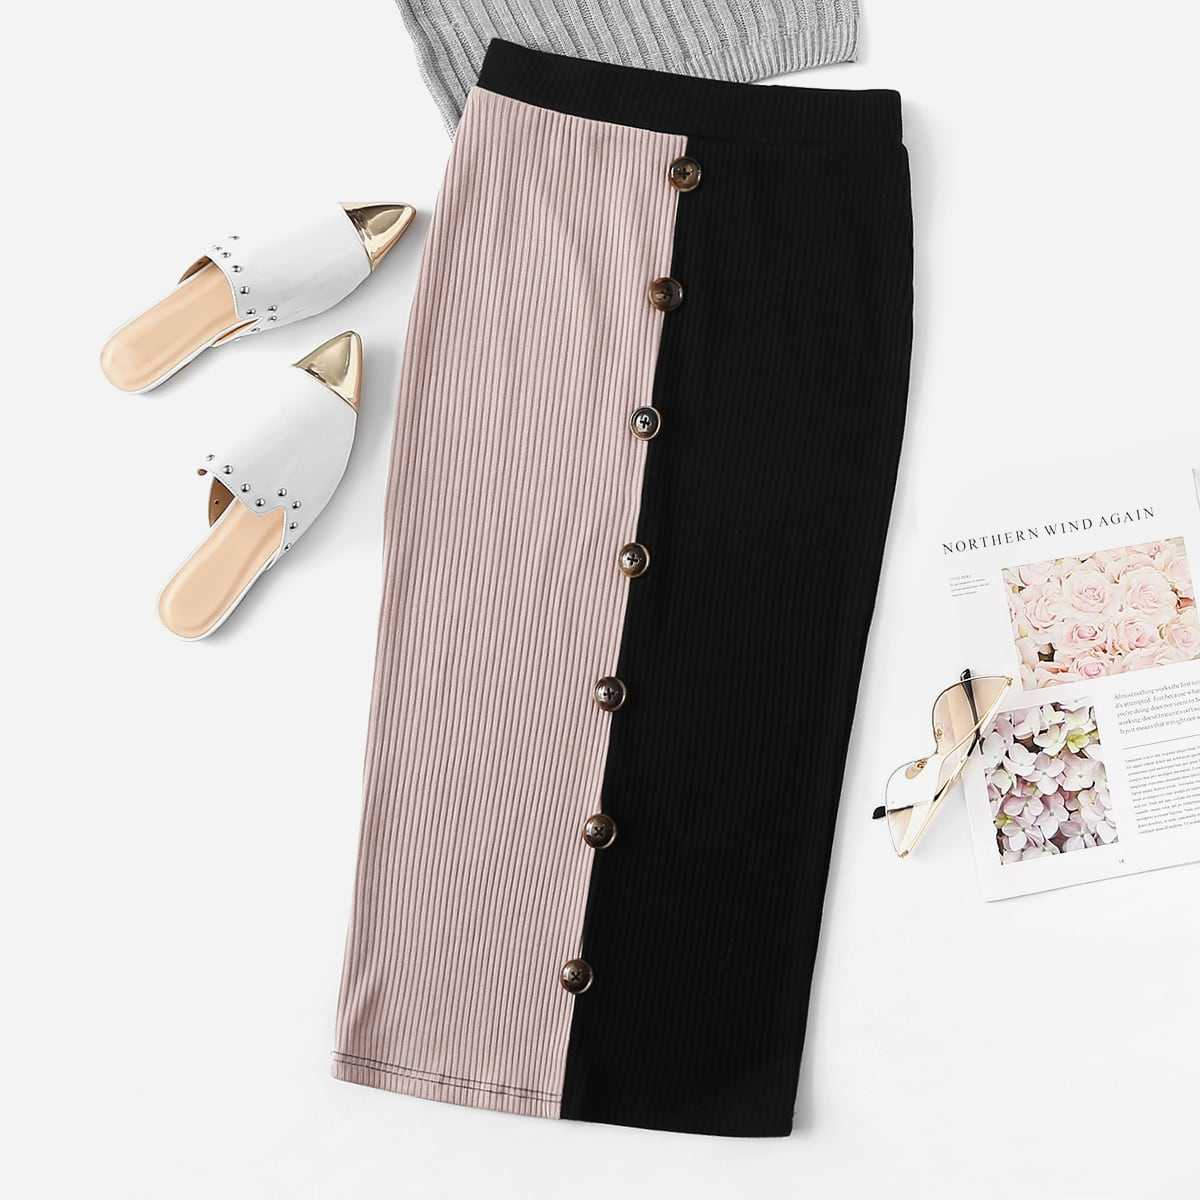 Button Detail Two Tone Ribbed Pencil Skirt in Multicolor by ROMWE on GOOFASH